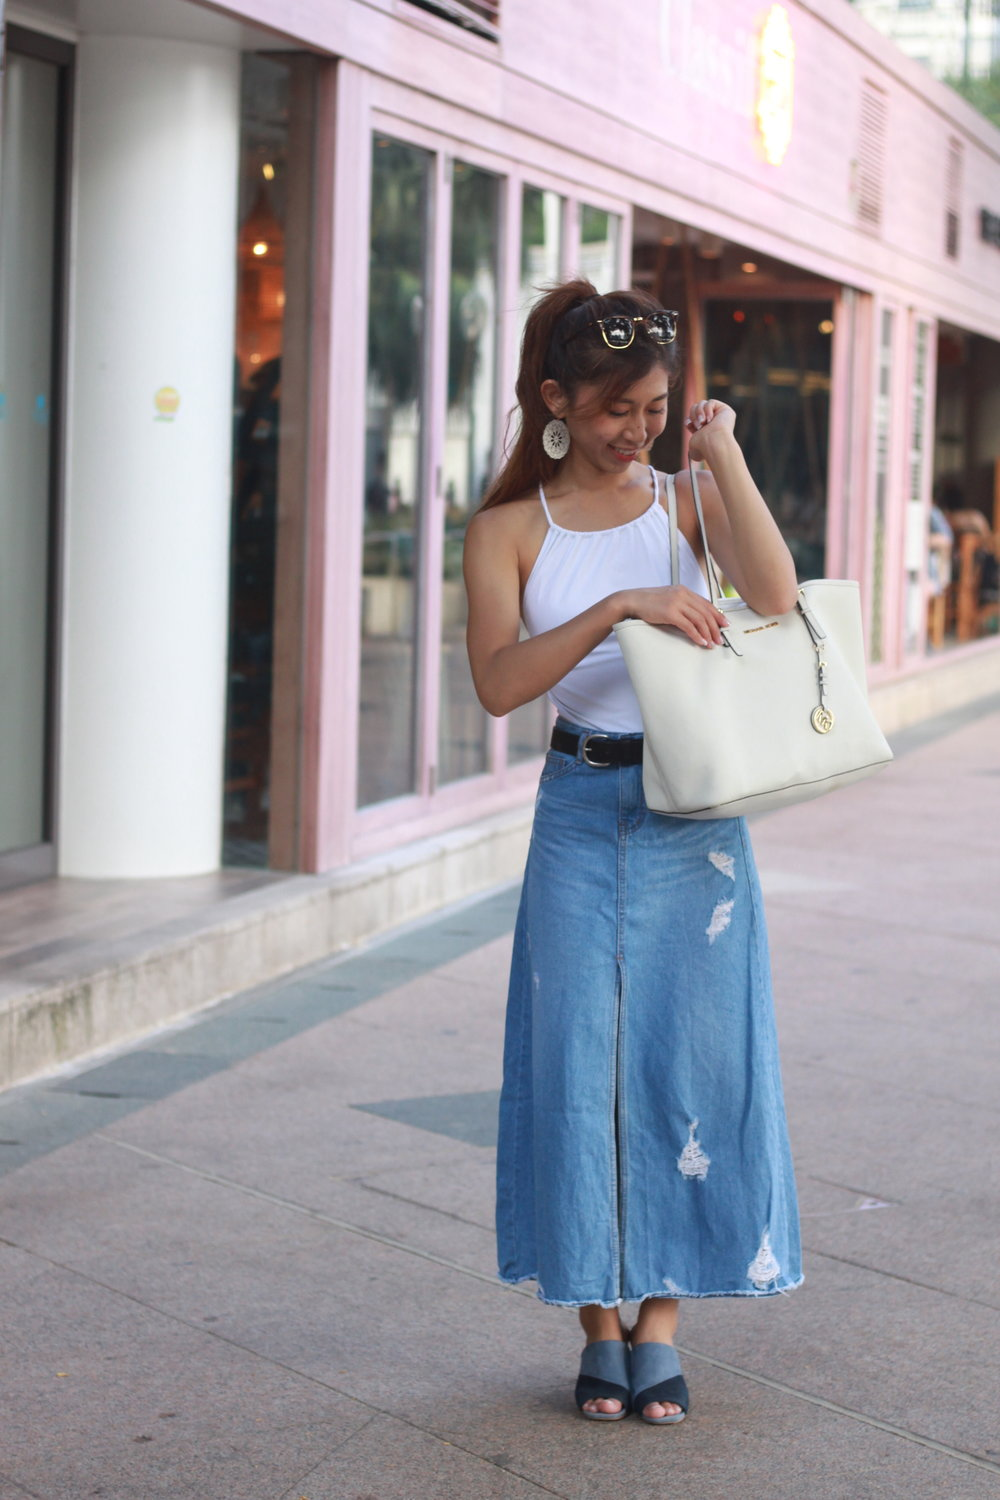 COS white swimsuit with tie back / Nude denim skirt / Zara mules / Levi's black belt